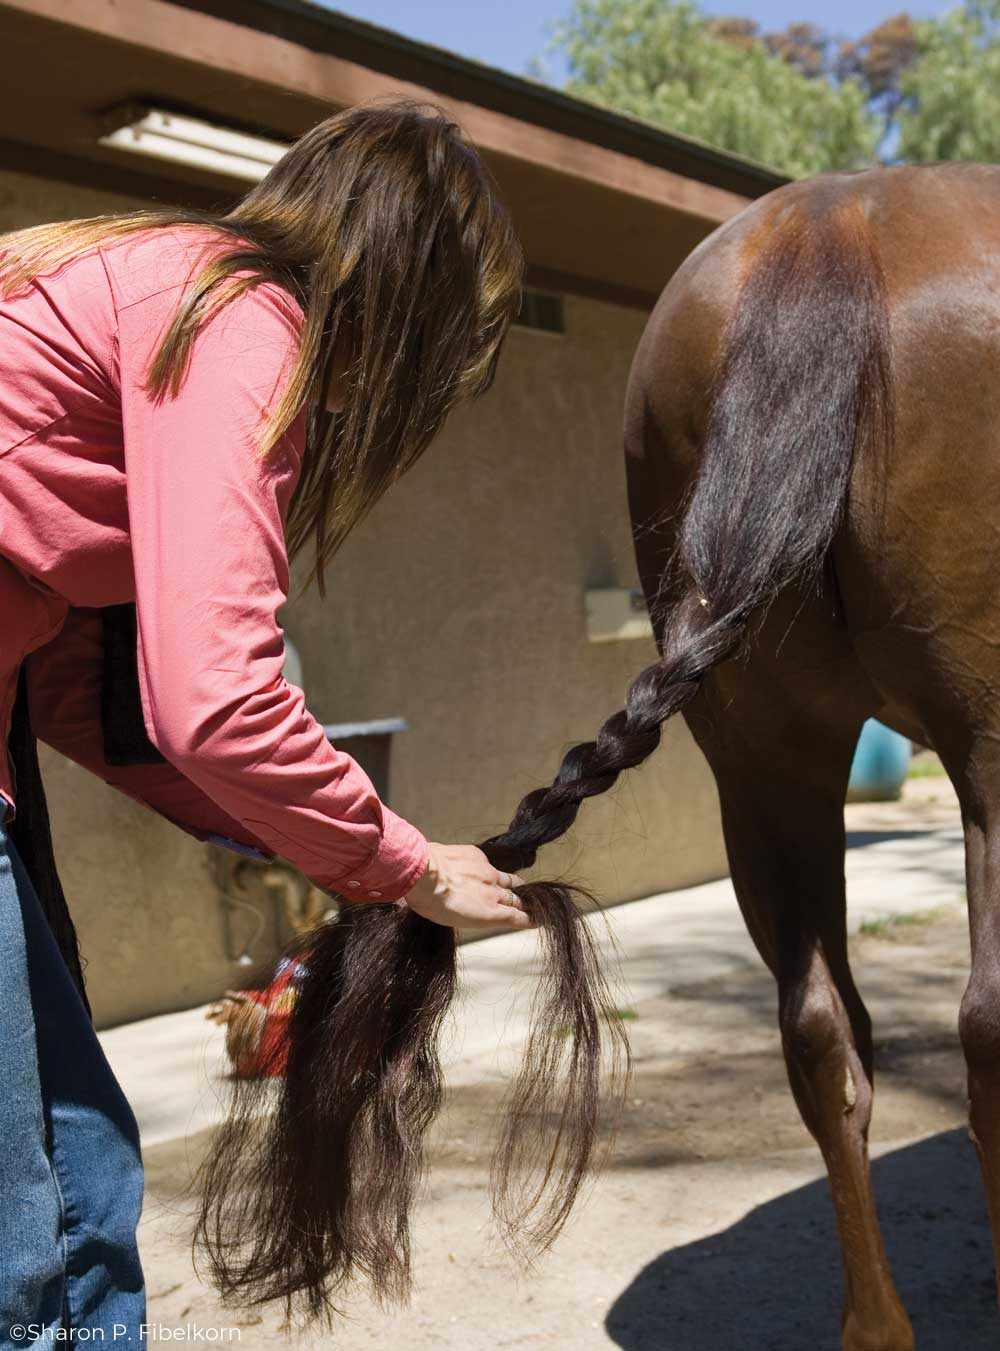 Braiding a horse's tail for maintenance